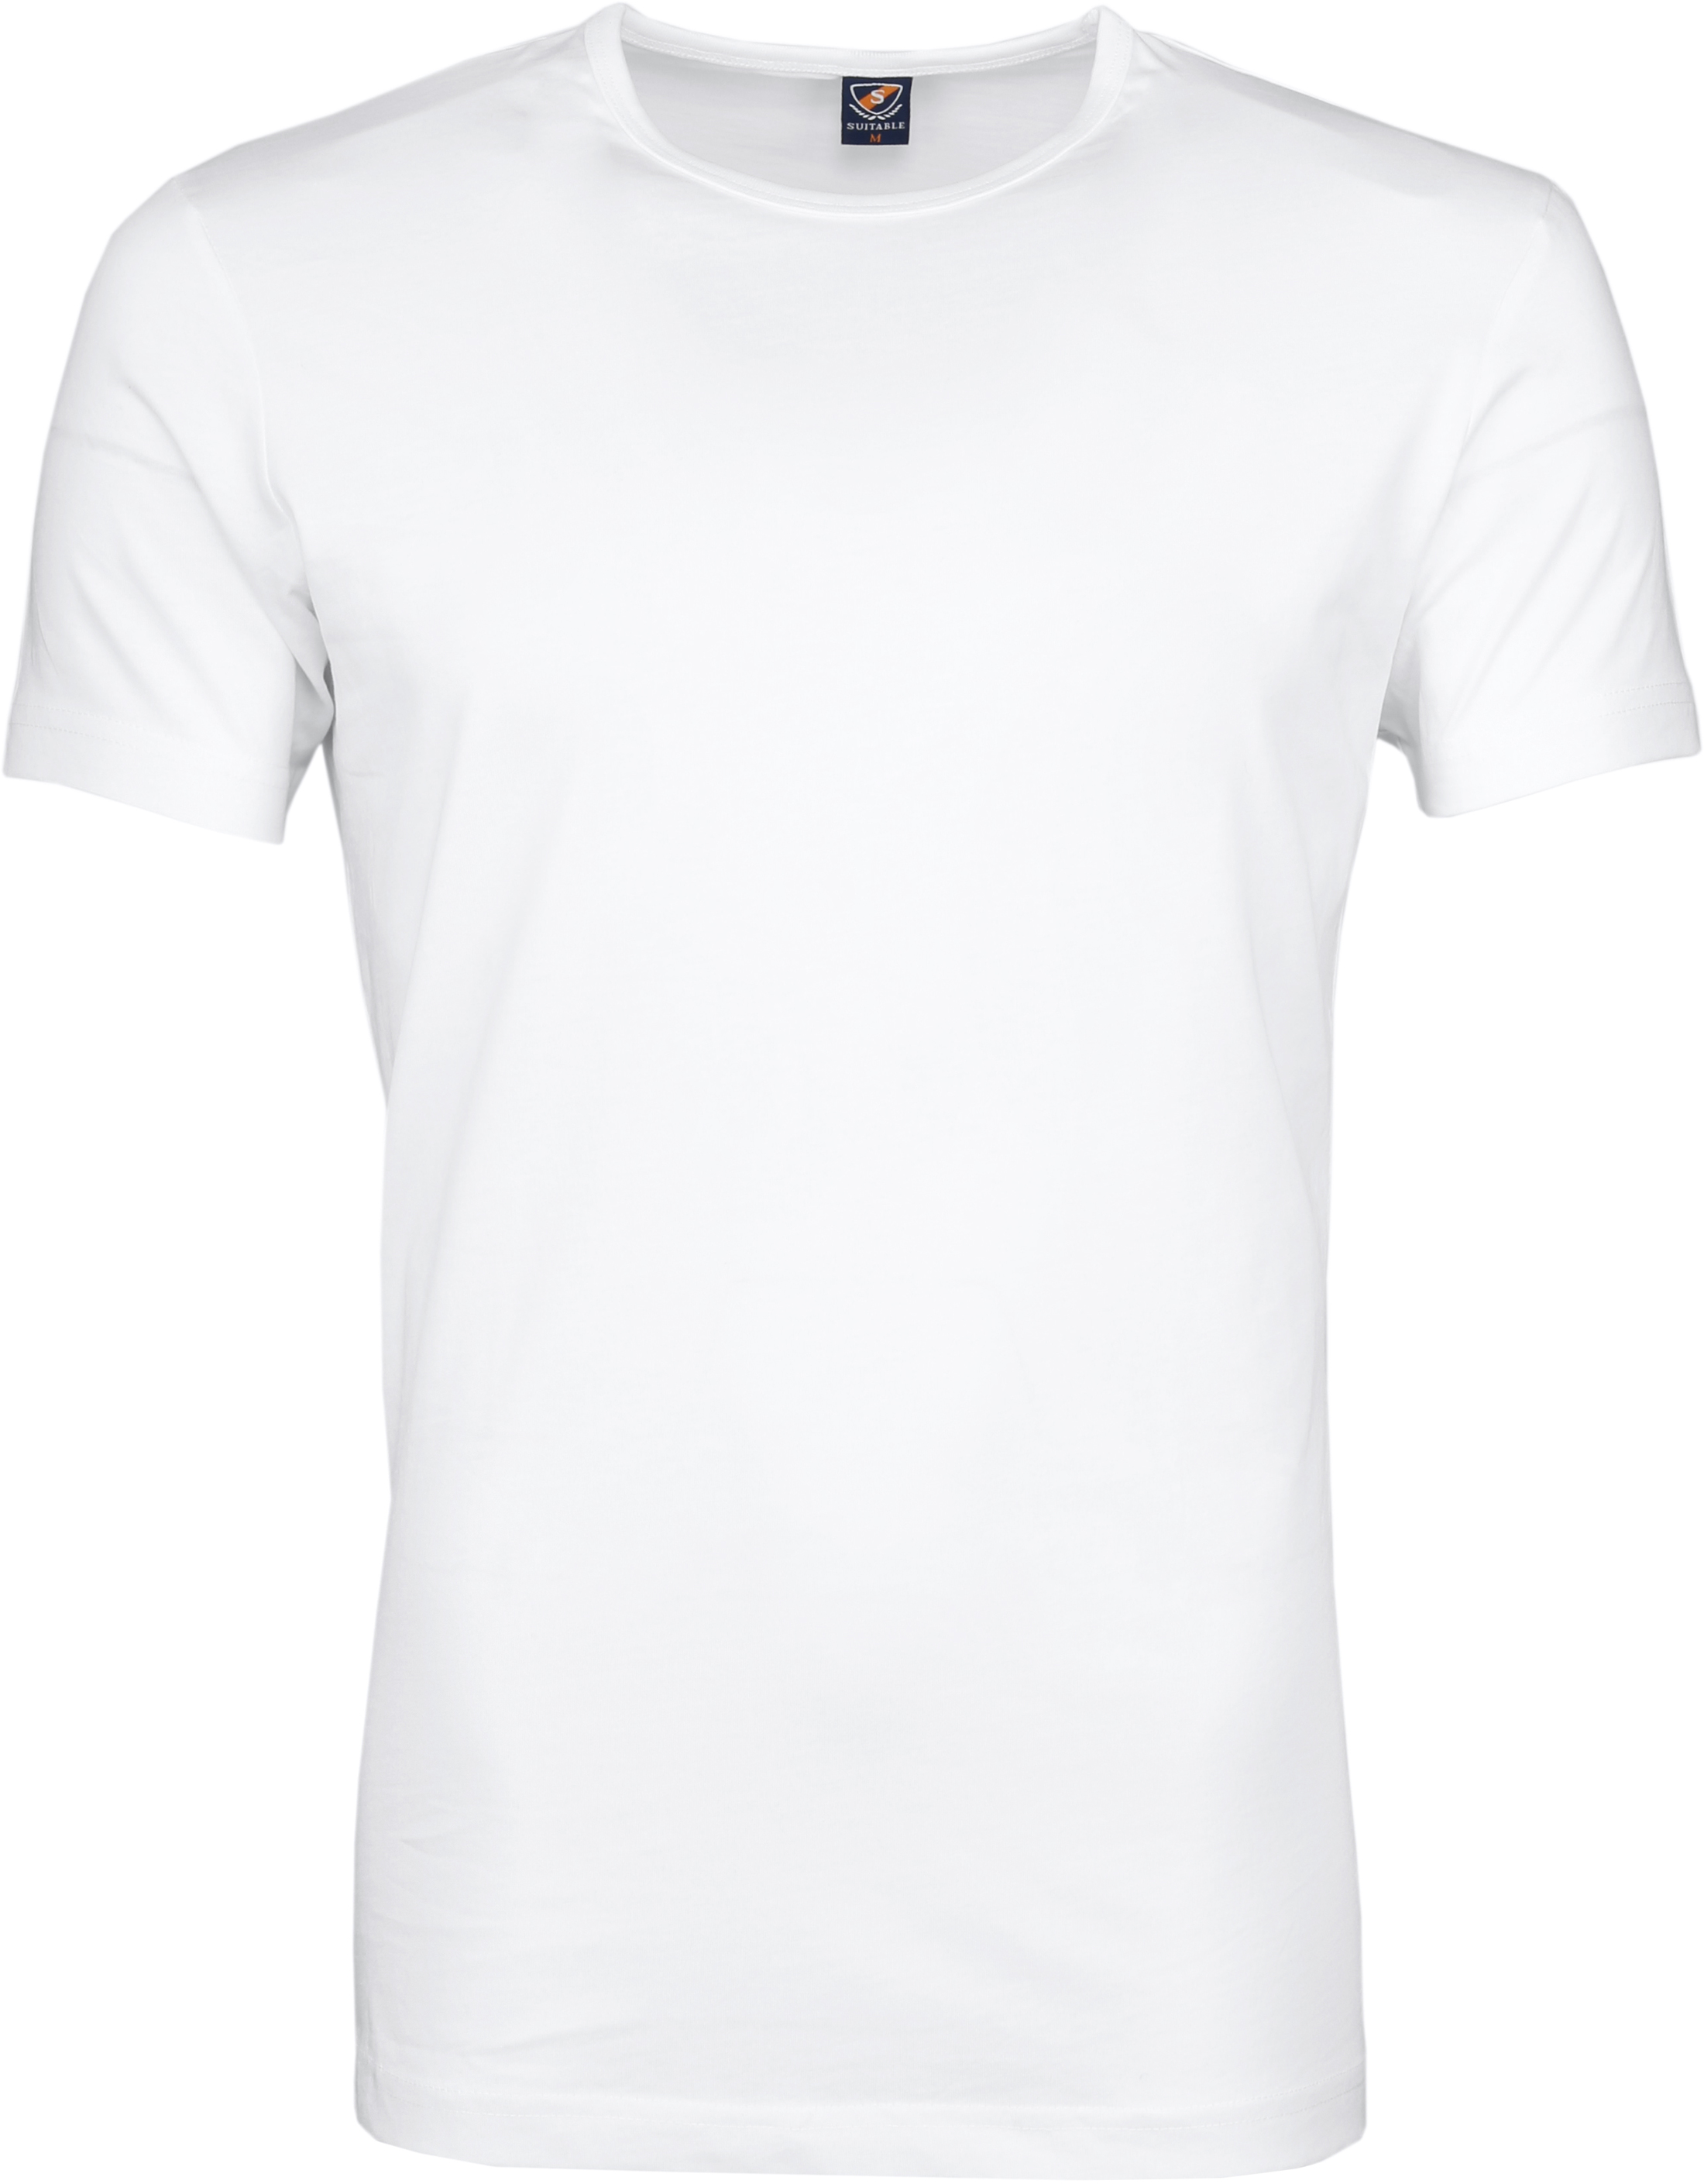 White T-shirt O-Neck 6-Pack foto 2